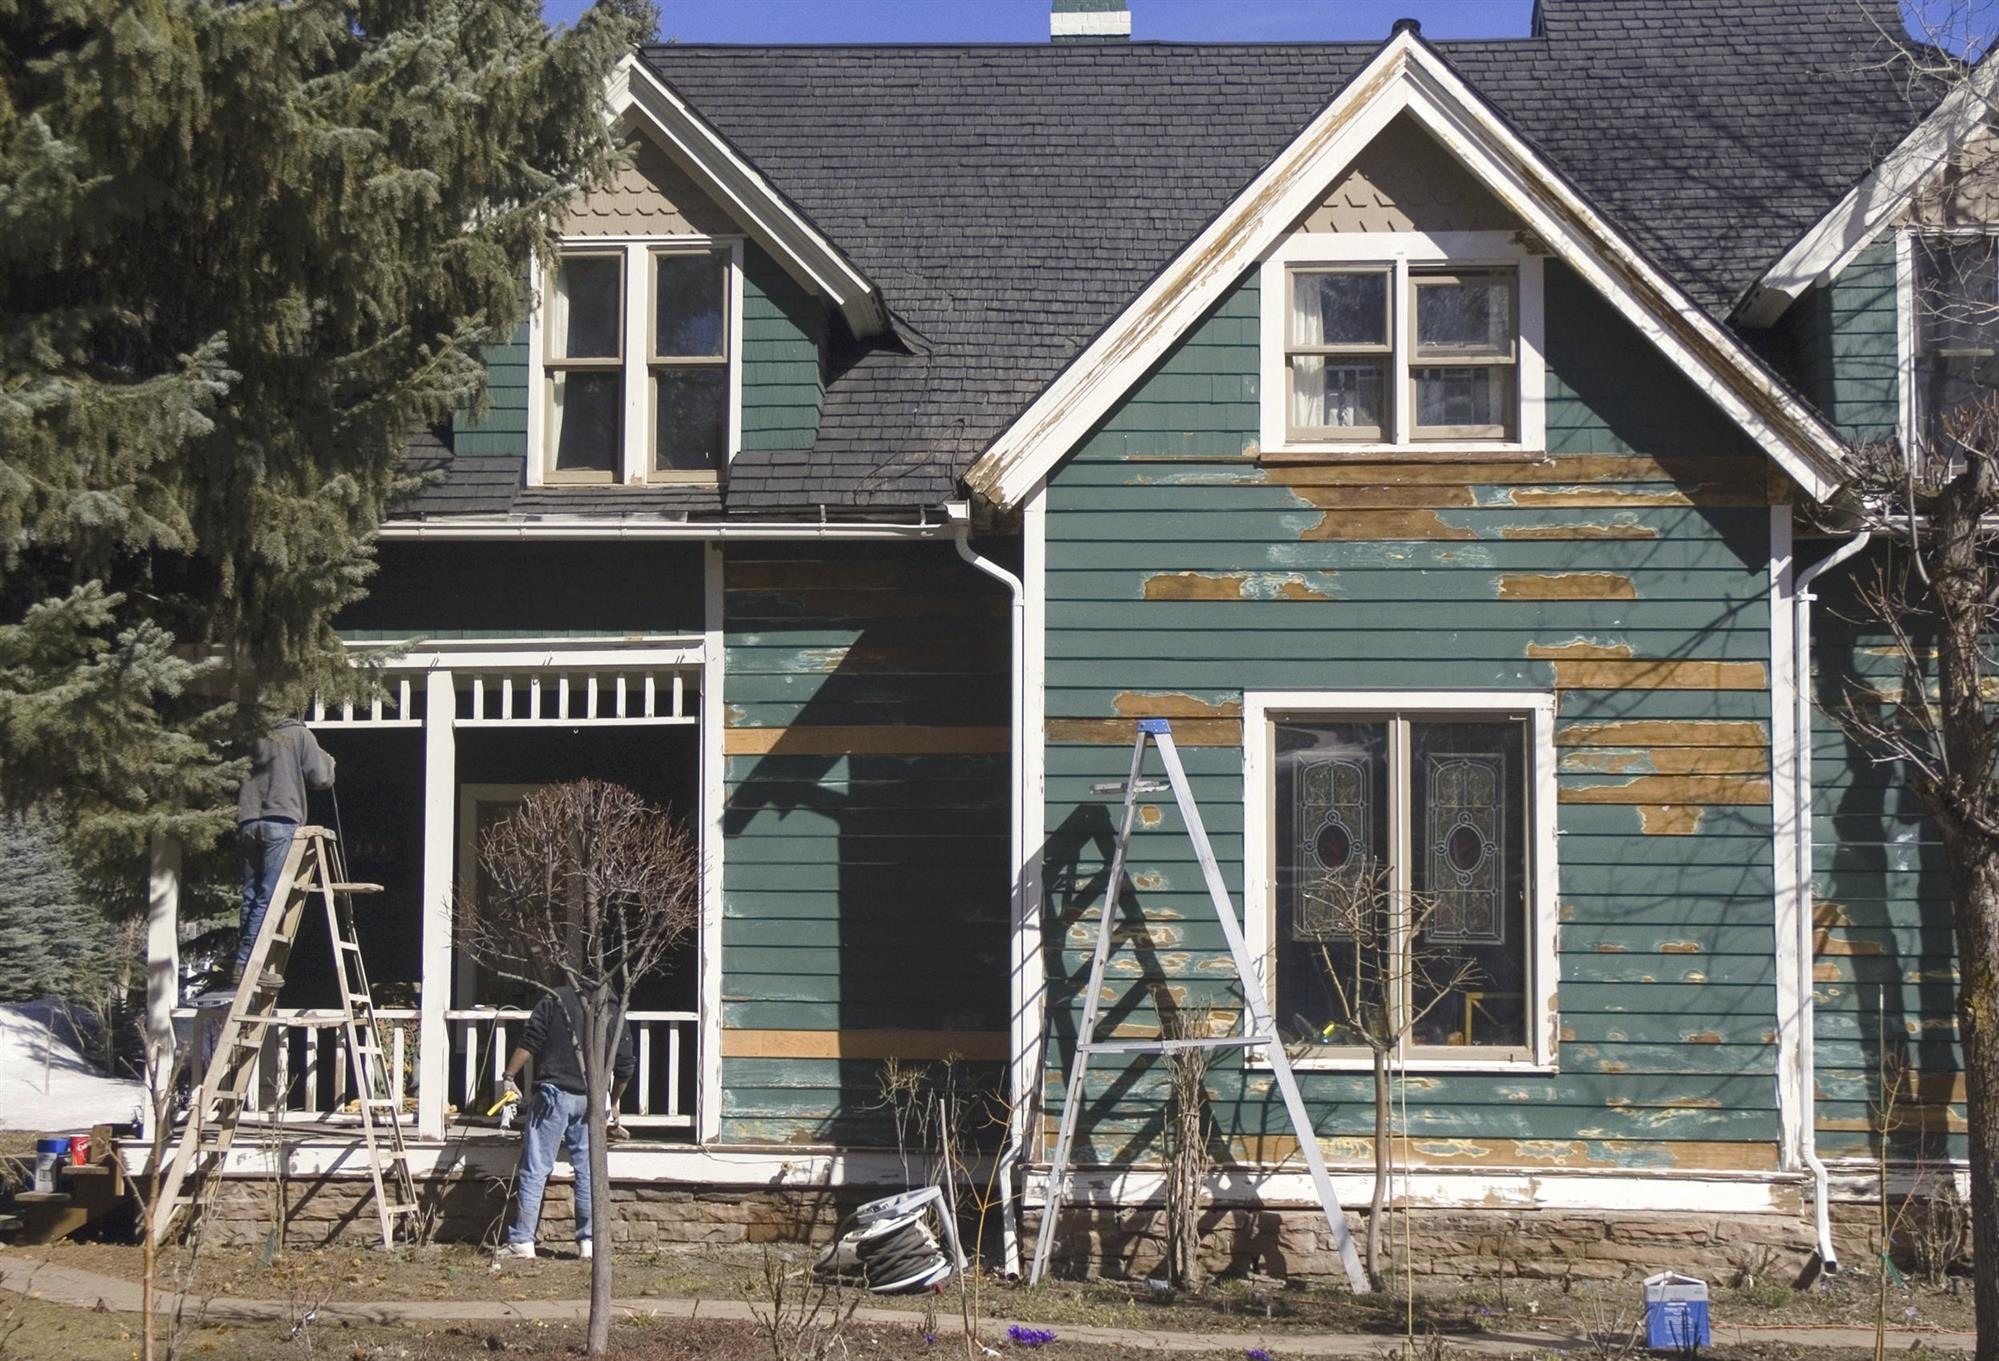 How Preserving the Appearance of Historical Buildings Helps Communities